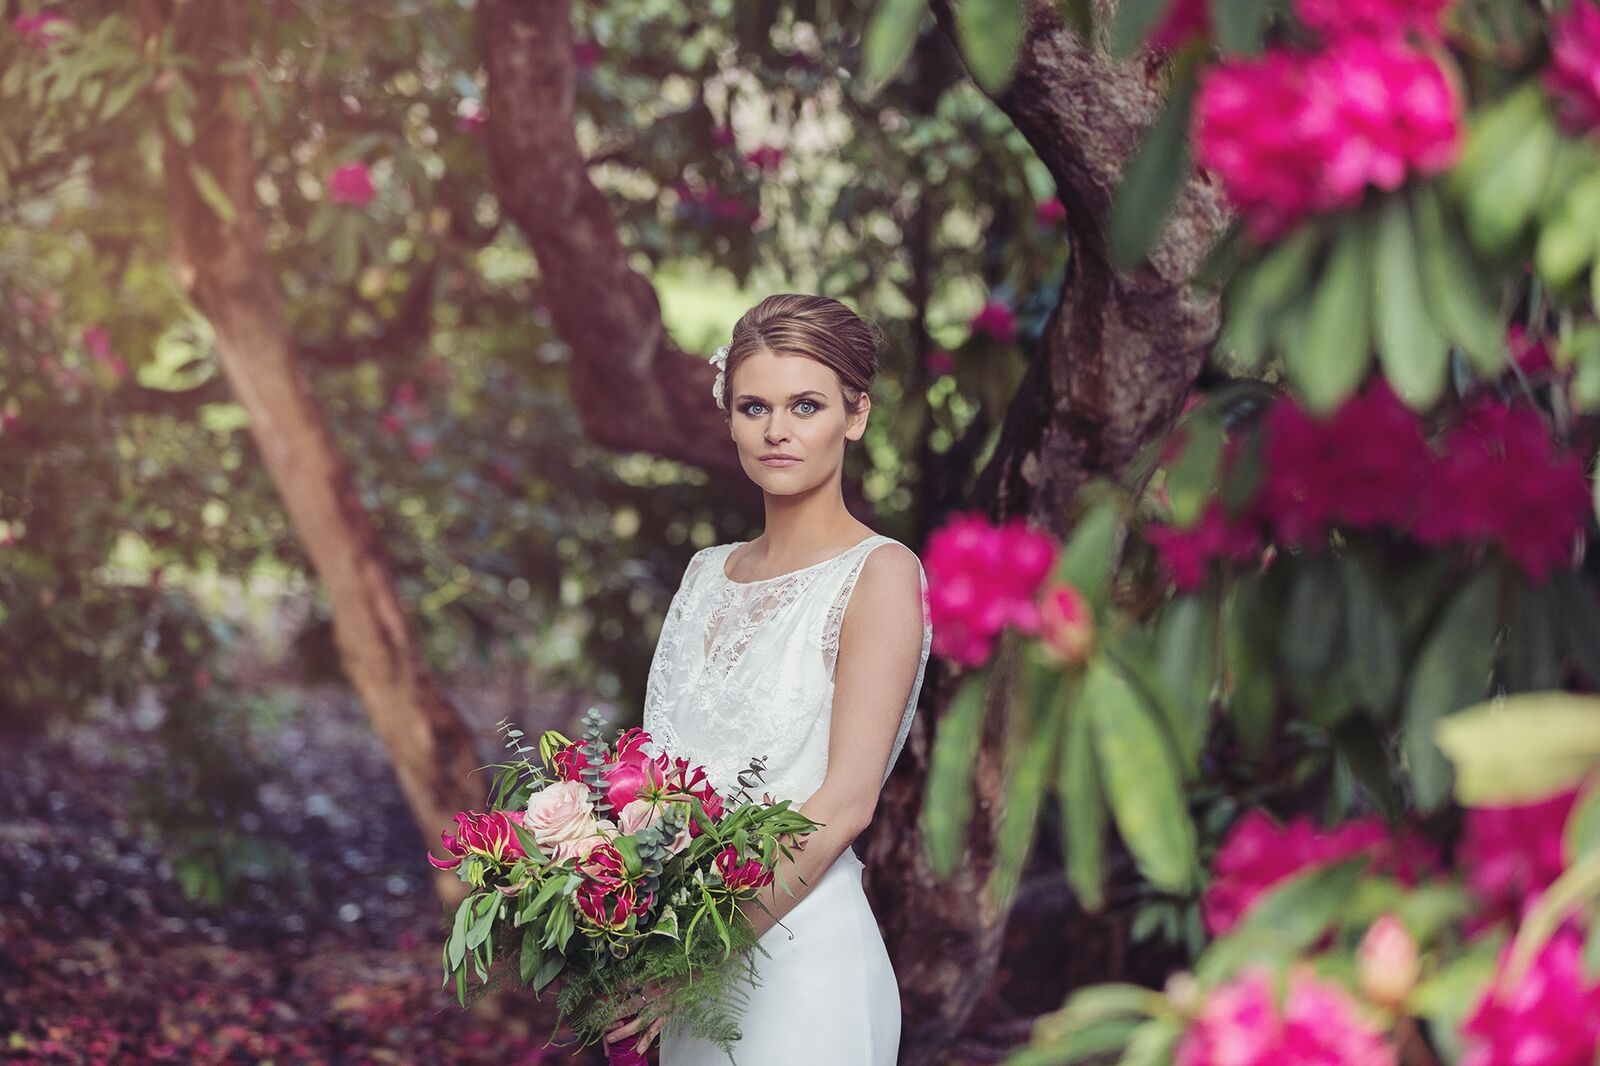 Holker bride in garden 3.jpg